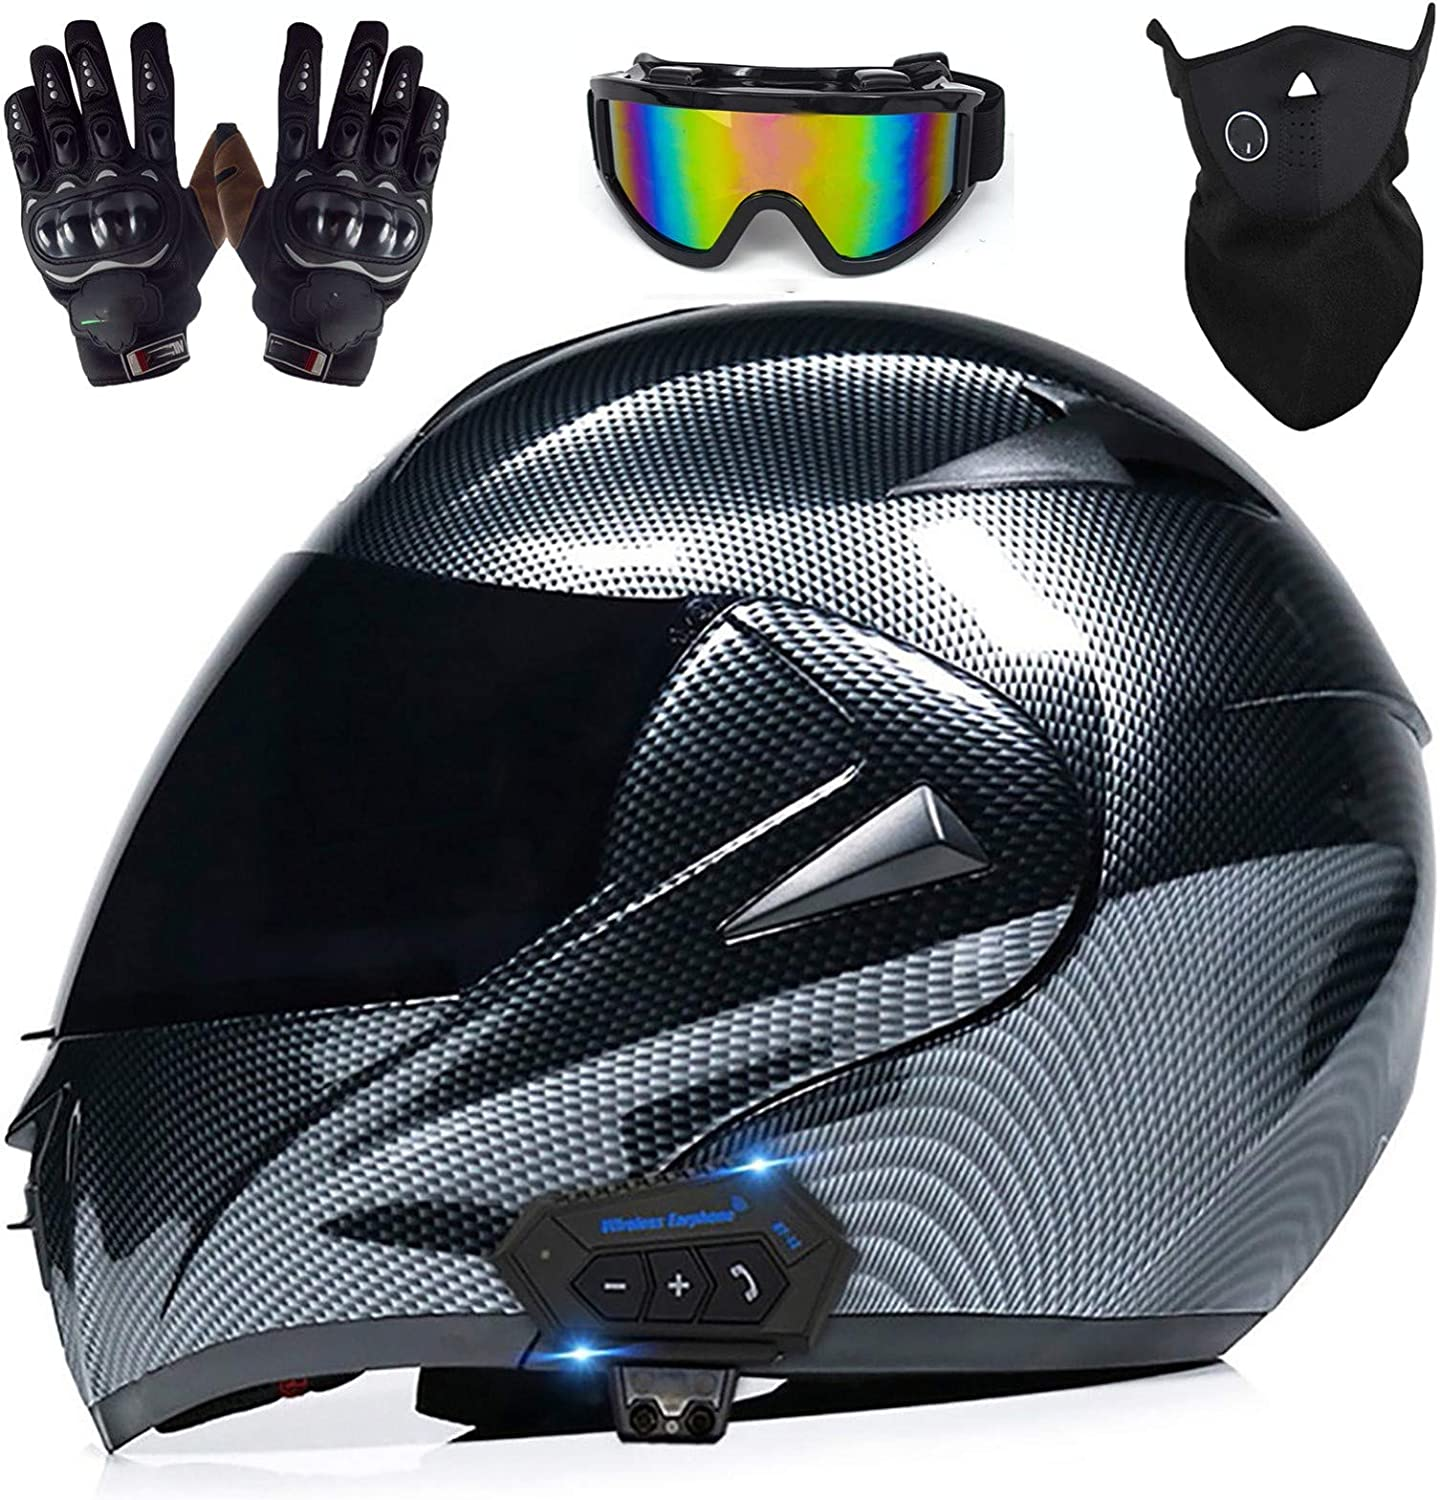 Motorcycle Bluetooth Helmet Motocross Racing Dou Street Clearance SALE Limited Choice time